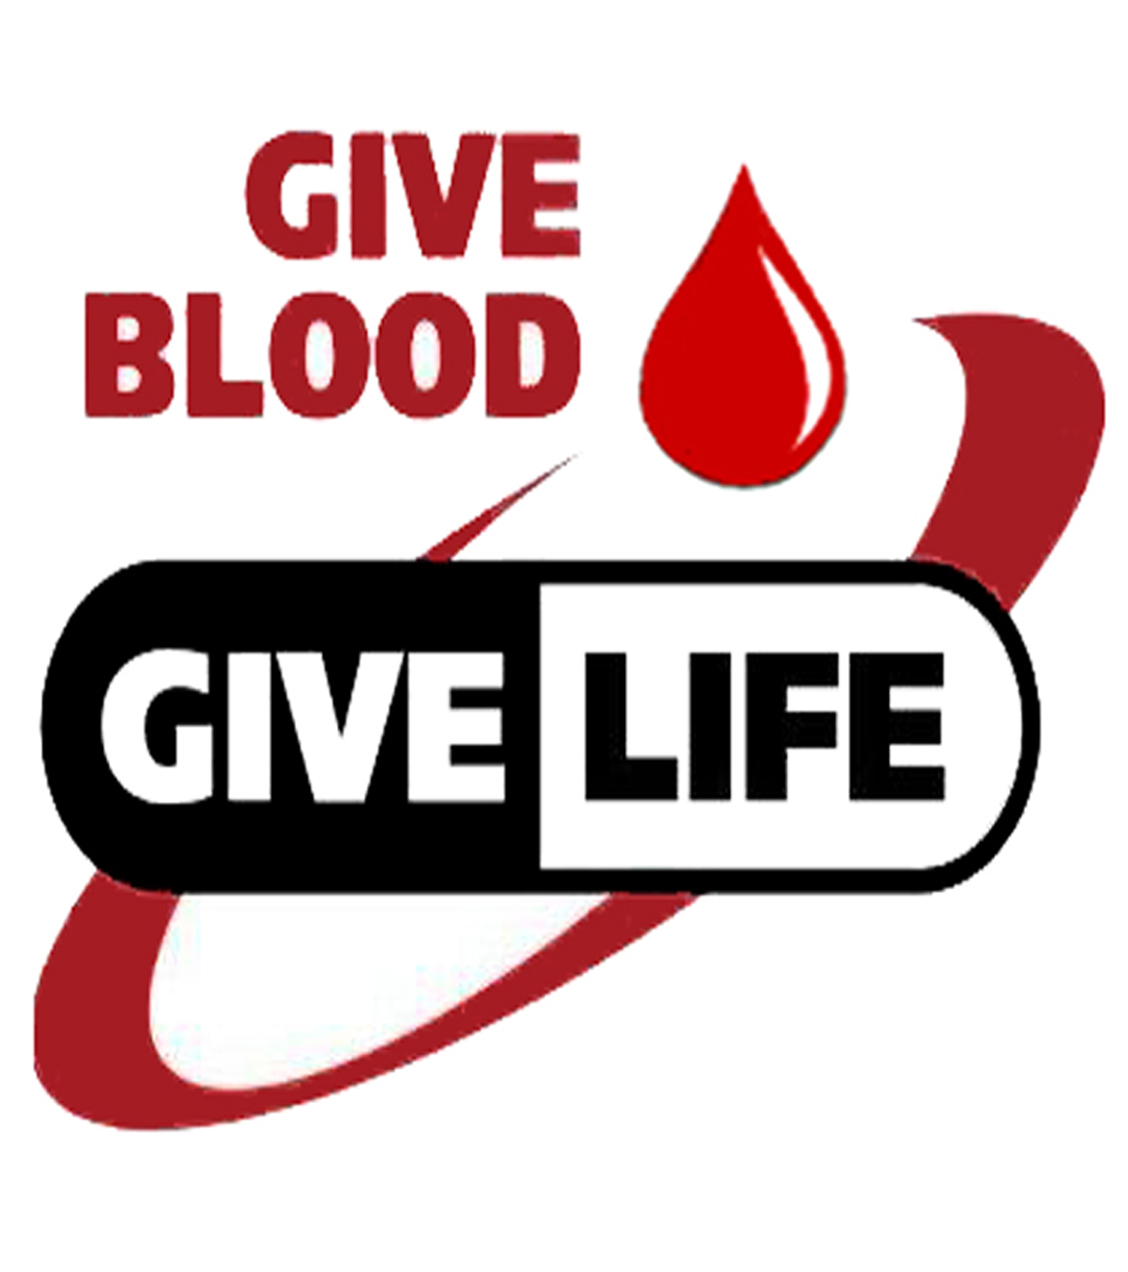 Clip Art Blood Drive Clip Art american red cross blood drive clipart kid images